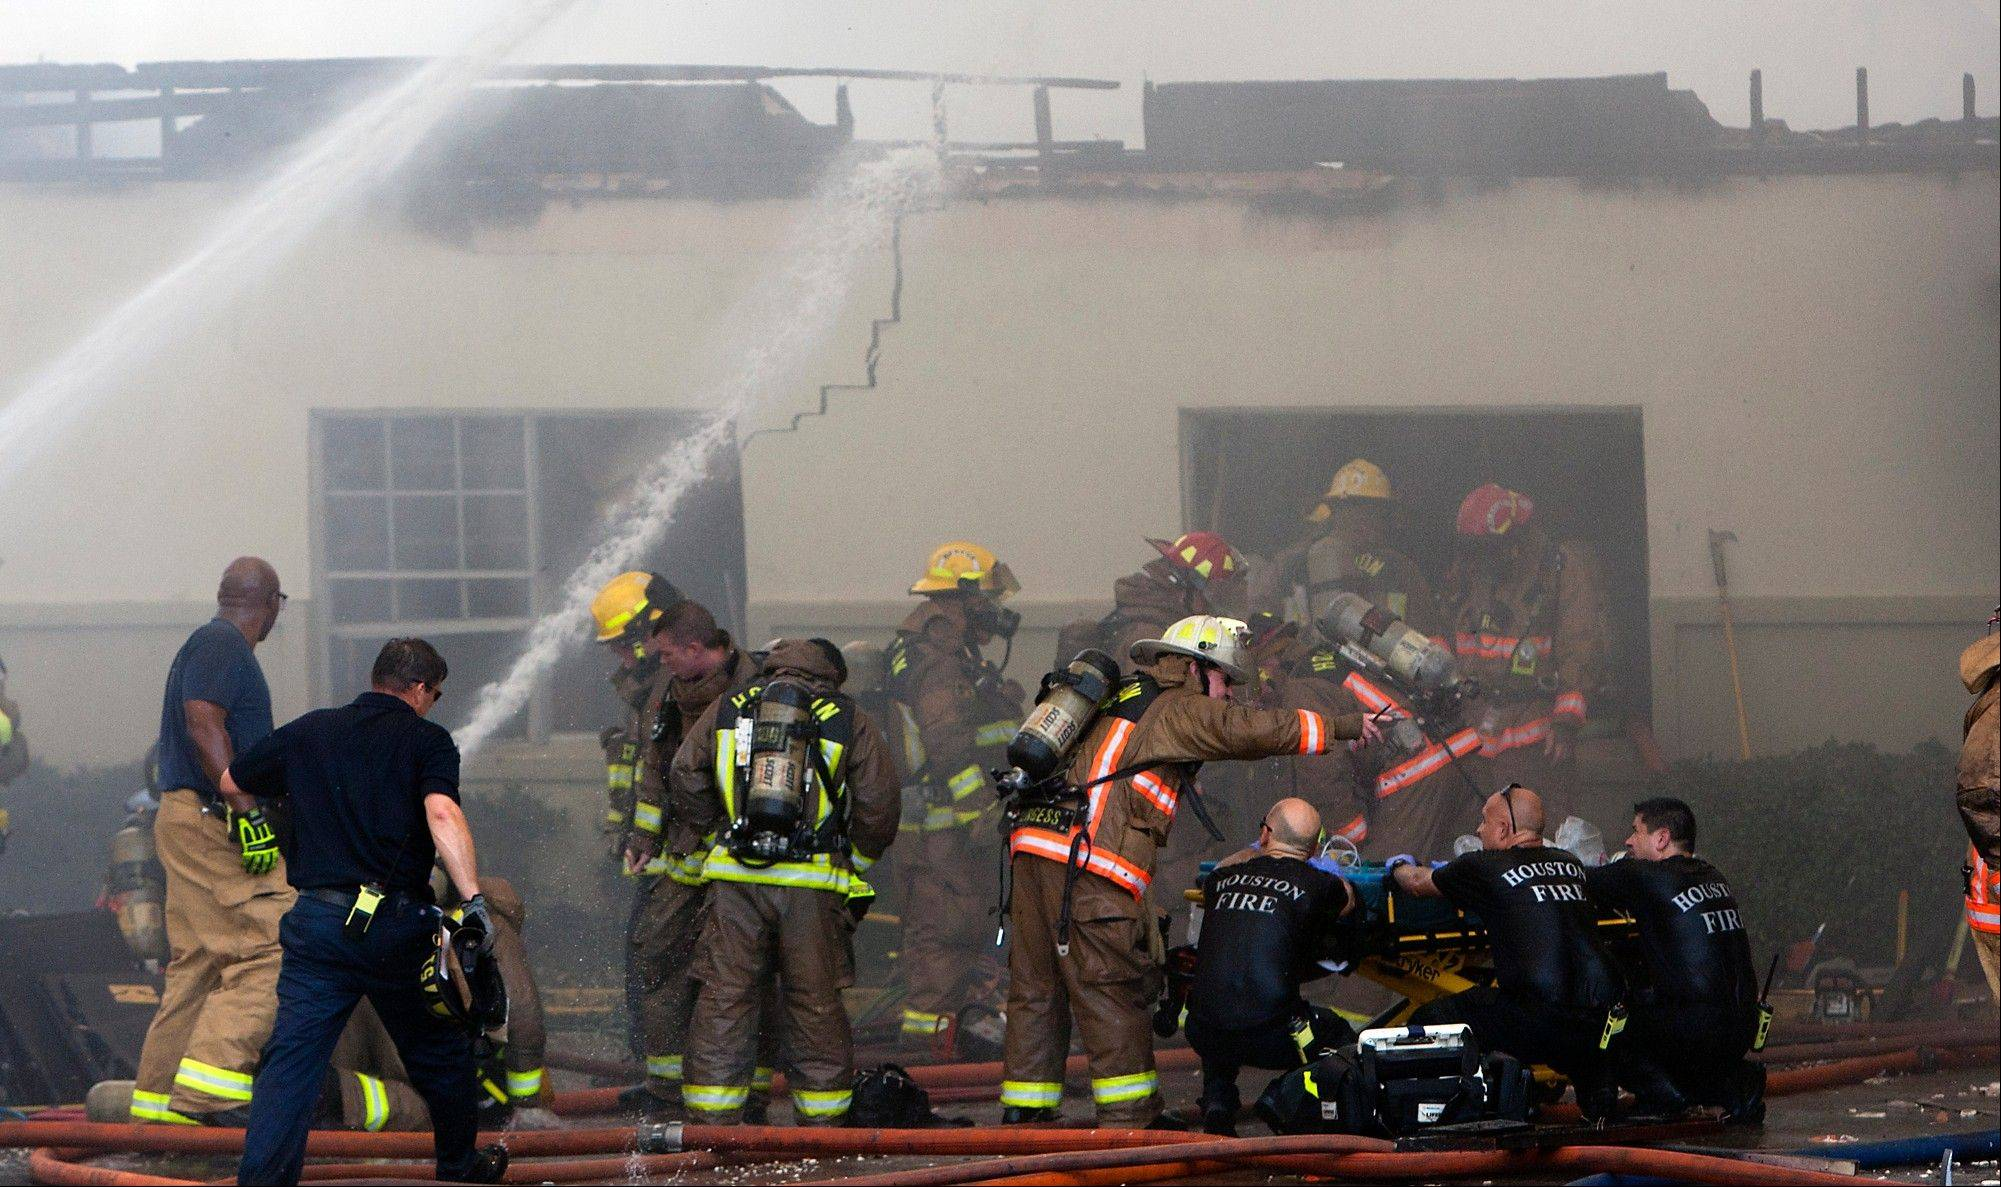 Flames spread and were shooting from the roof, blanketing the area in thick smoke, before firefighters extinguished the blaze about two hours later.